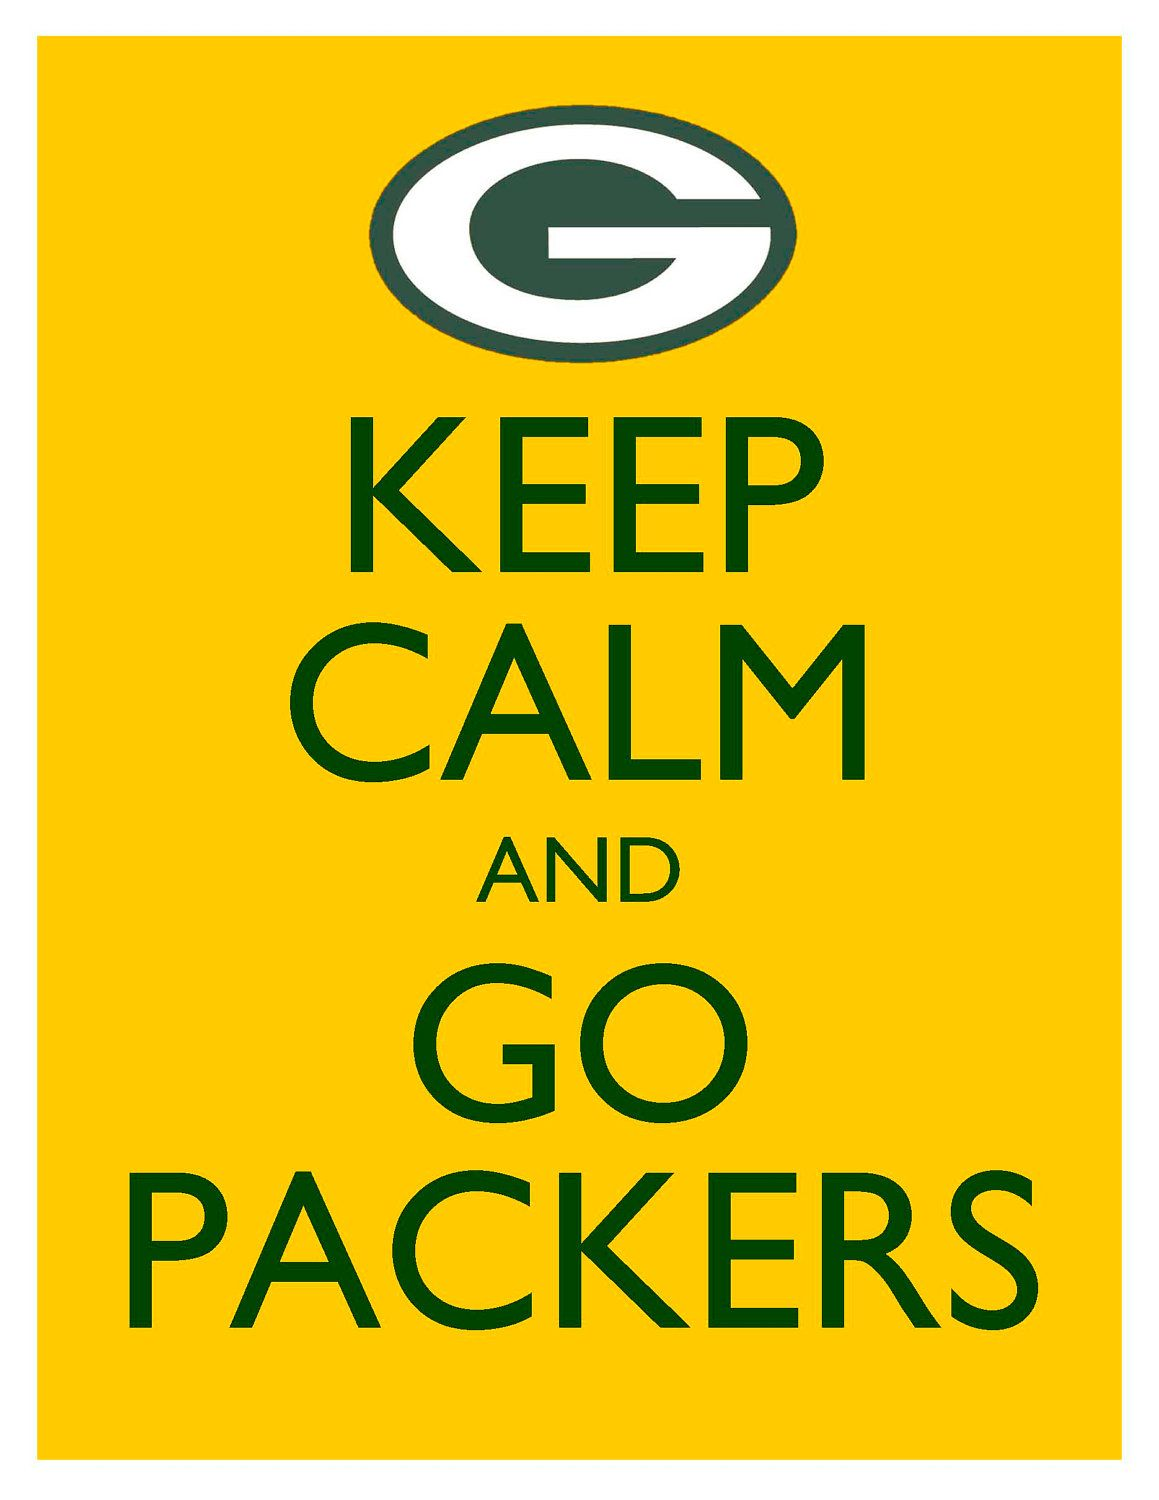 Go Pack Go Green Bay Packers Fans Go Packers Green Bay Packers